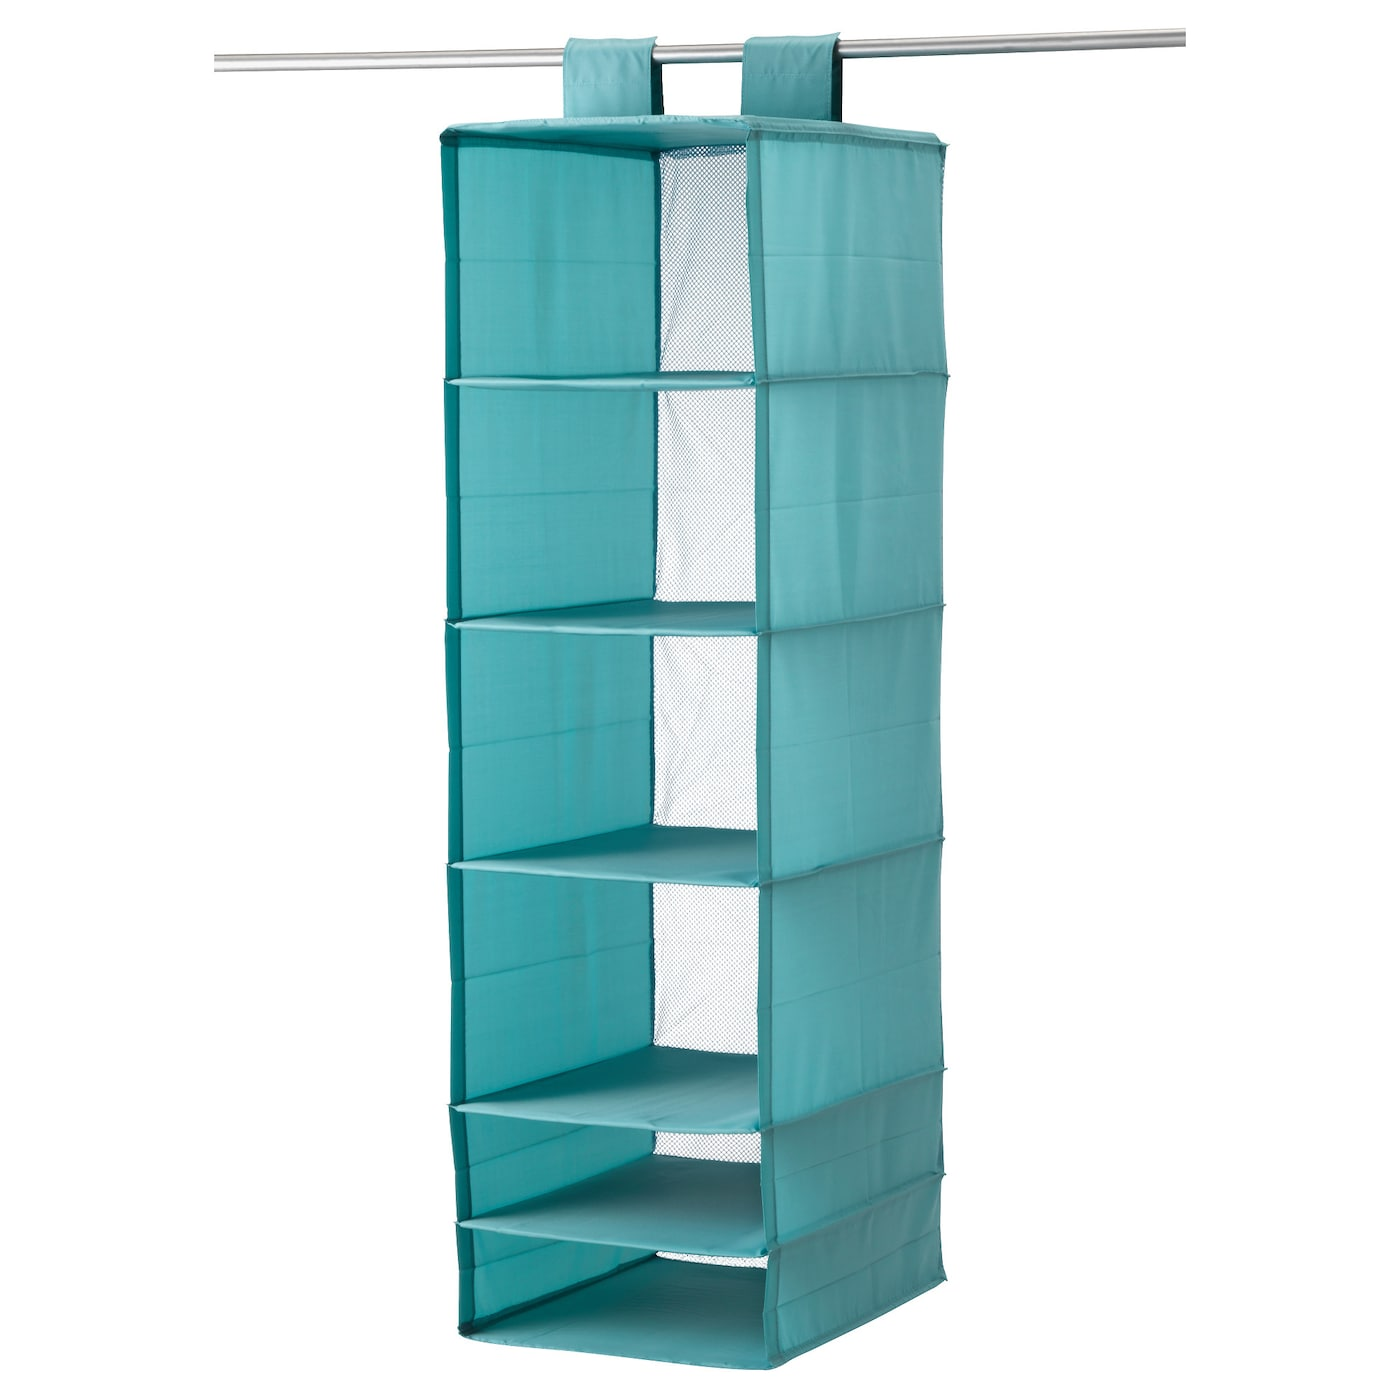 IKEA SKUBB storage with 6 compartments The hook and loop fastener makes it easy to hang up and move.